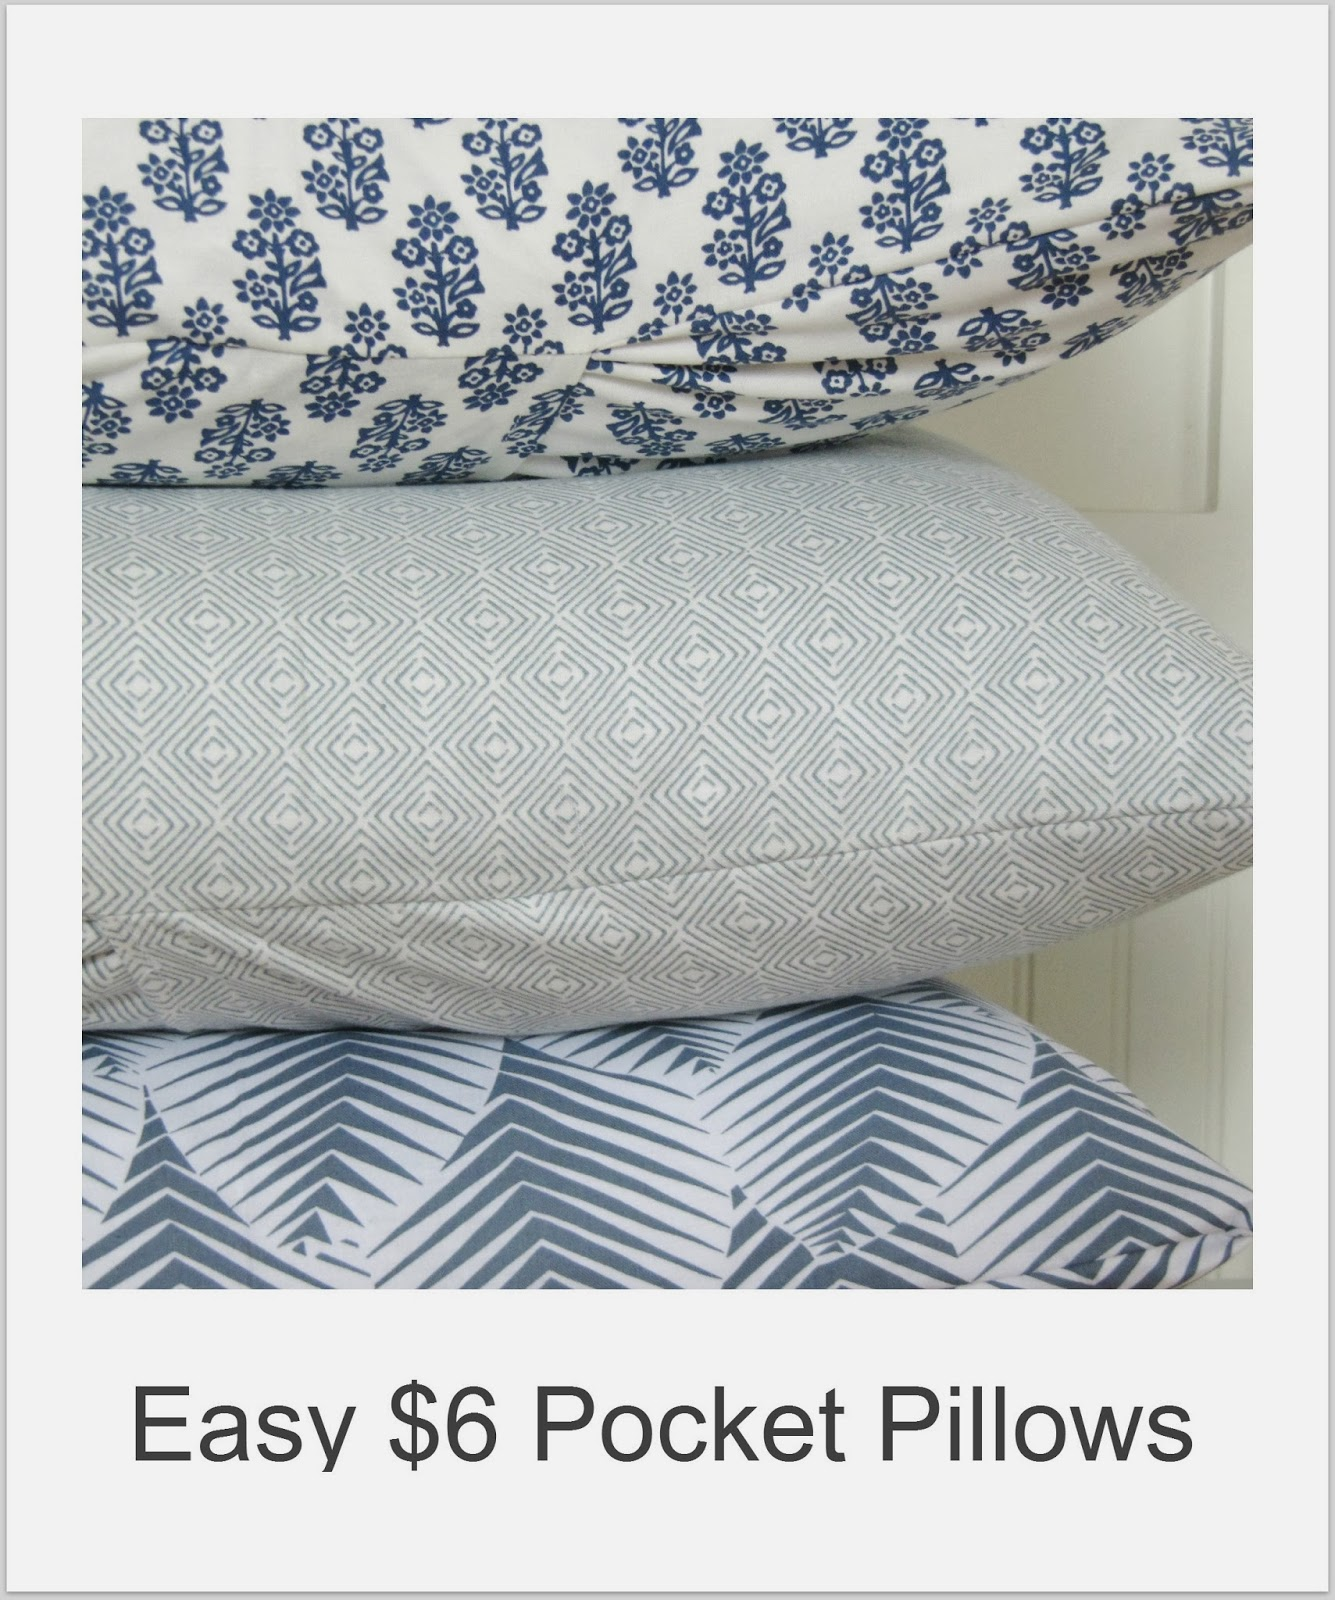 http://thewickerhouse.blogspot.com/2014/02/easy-6-pocket-pillows.html